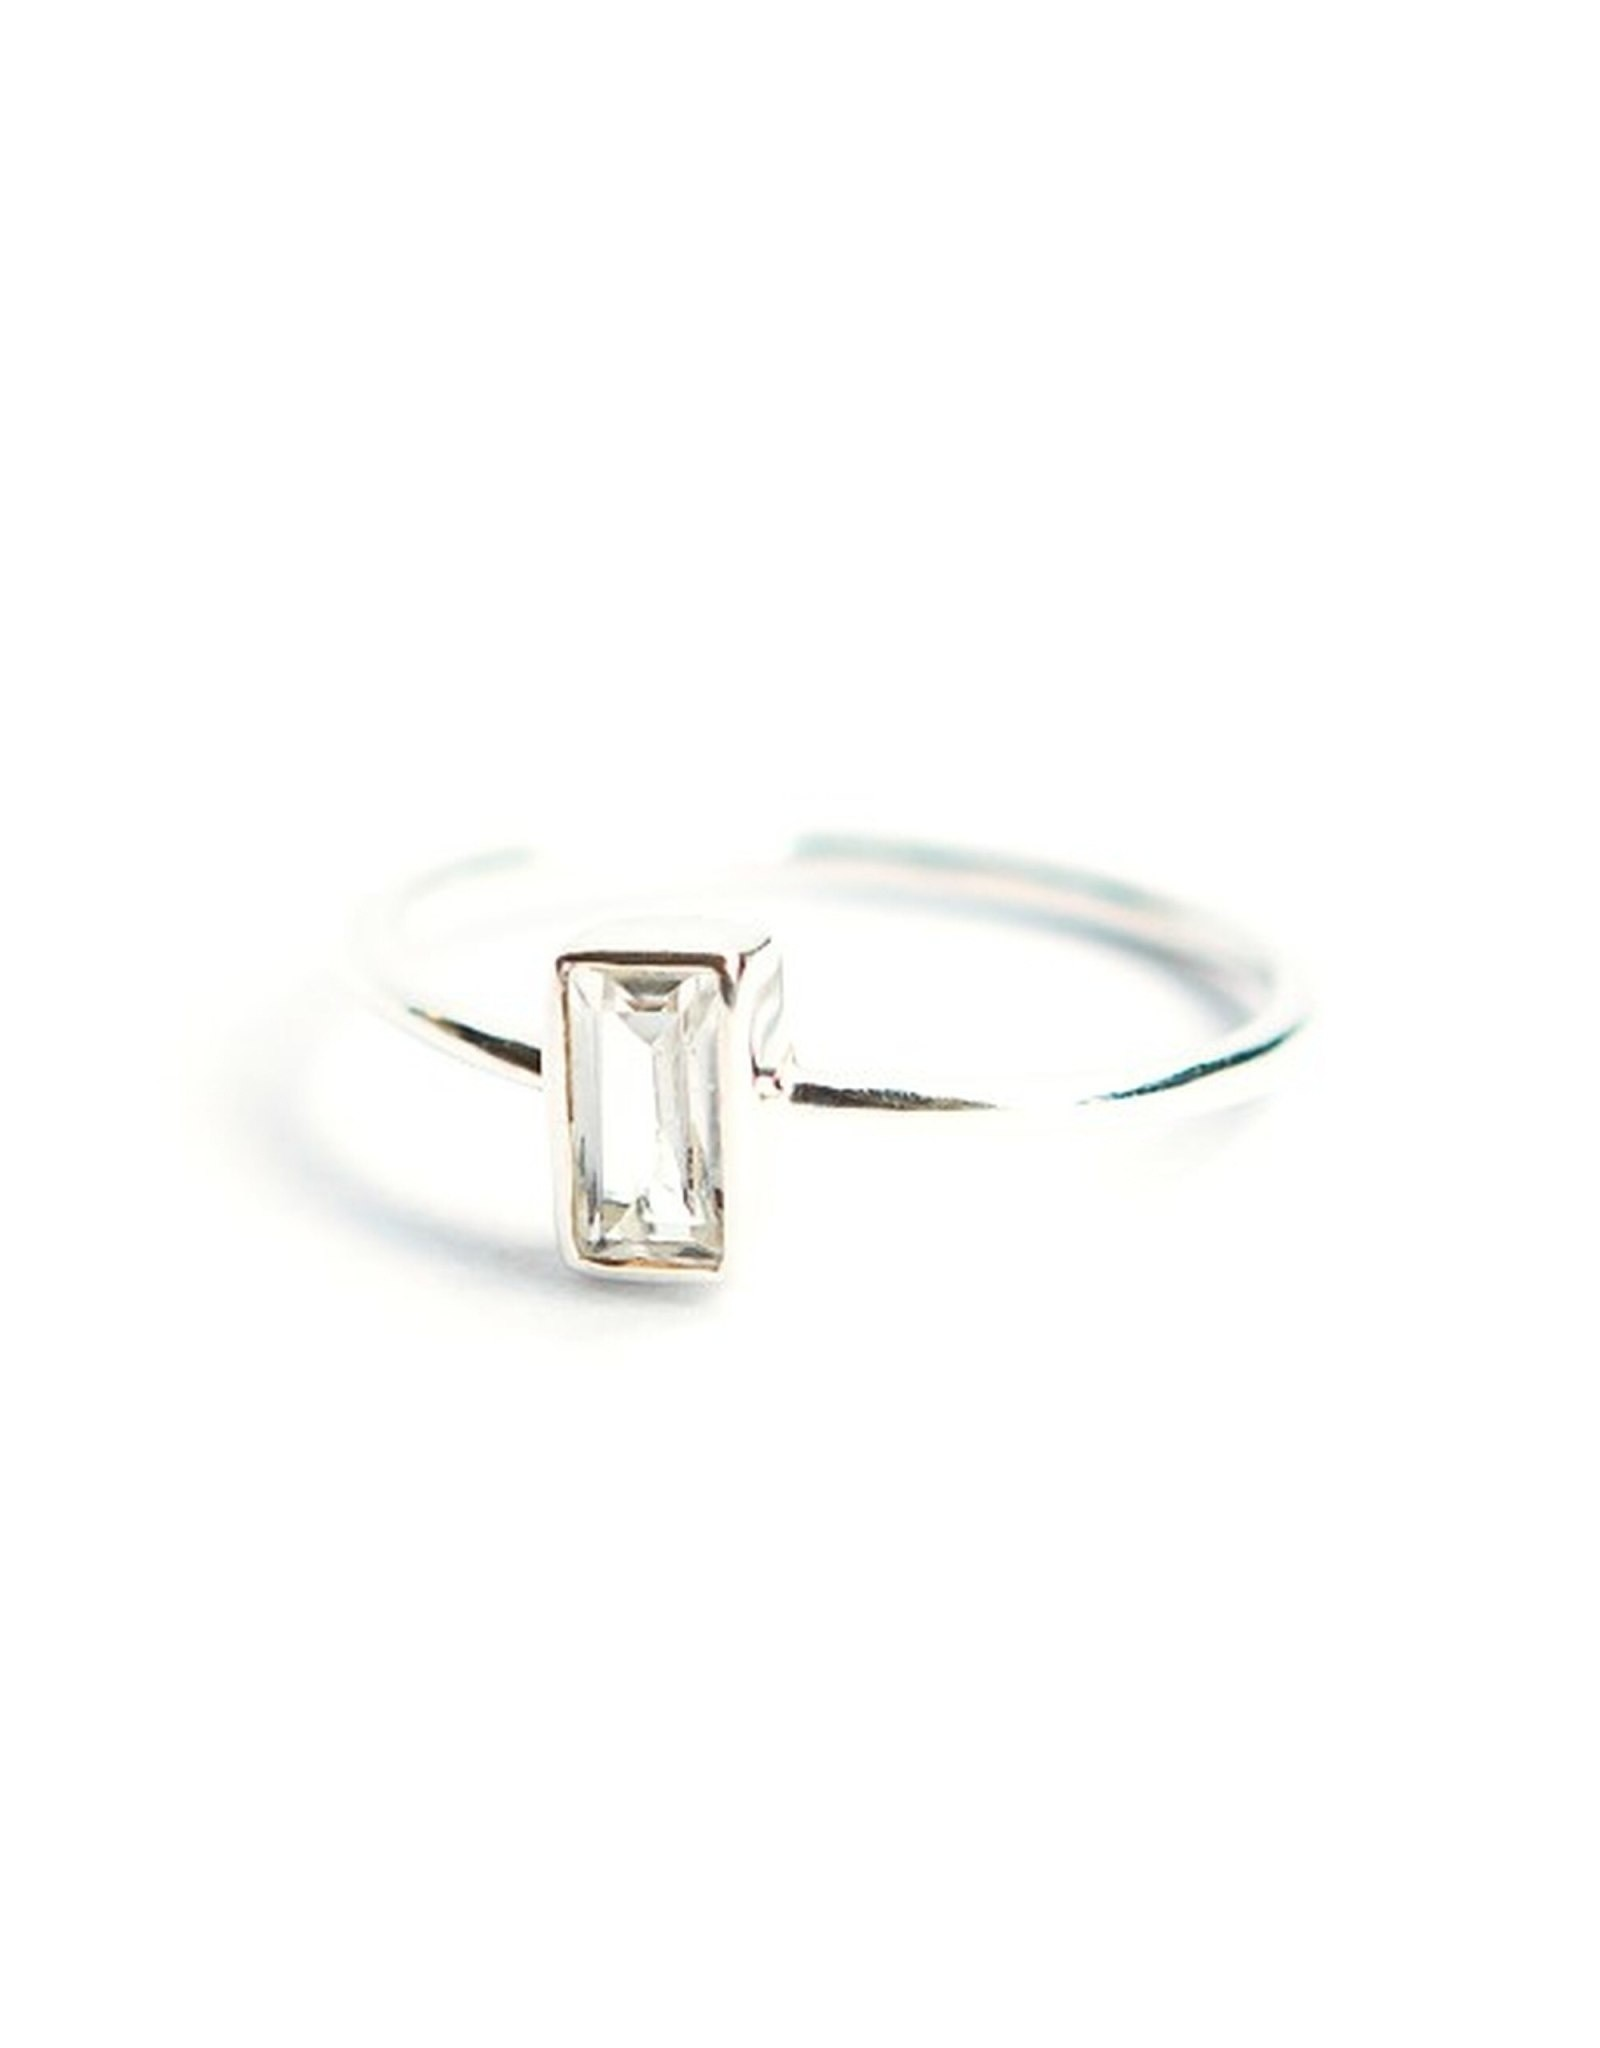 Sterling Silver Prism Ring, Crystal, Size 7, India